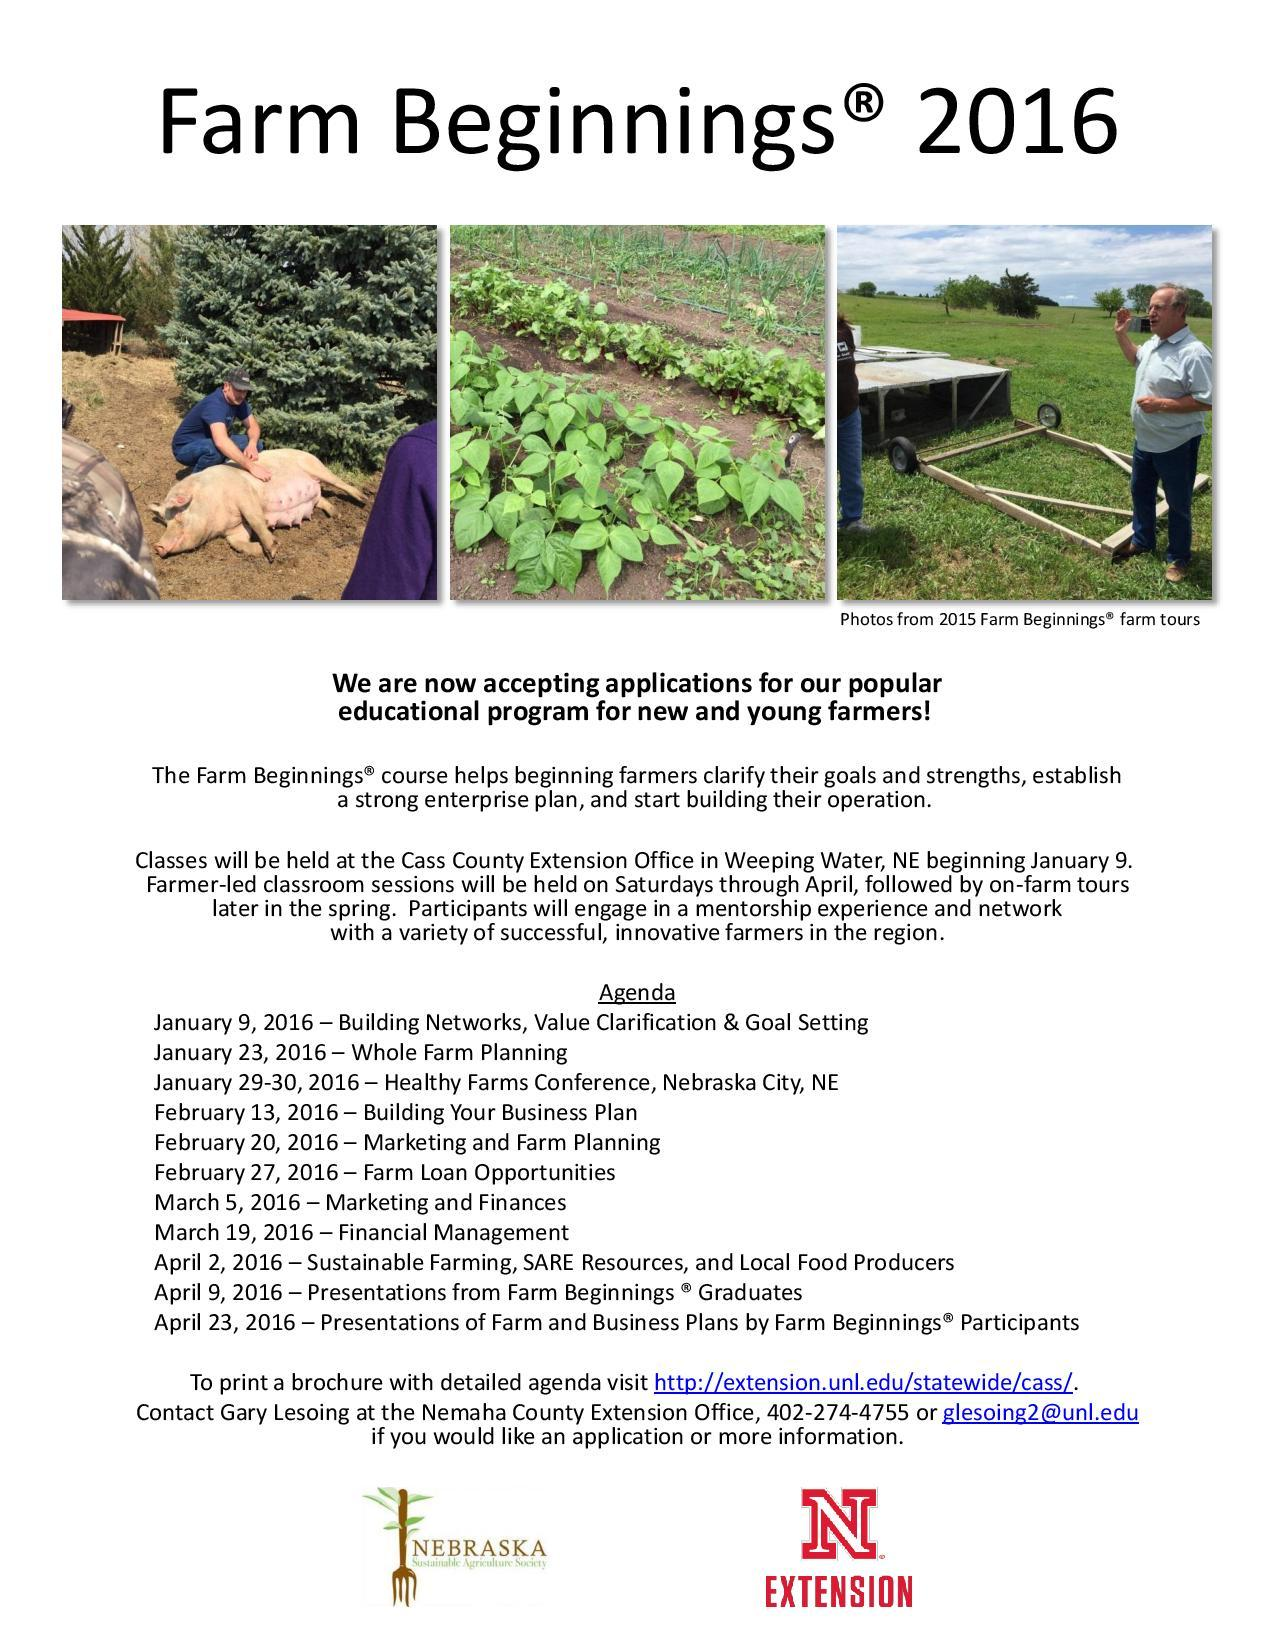 Farm Beginnings flyer page 001